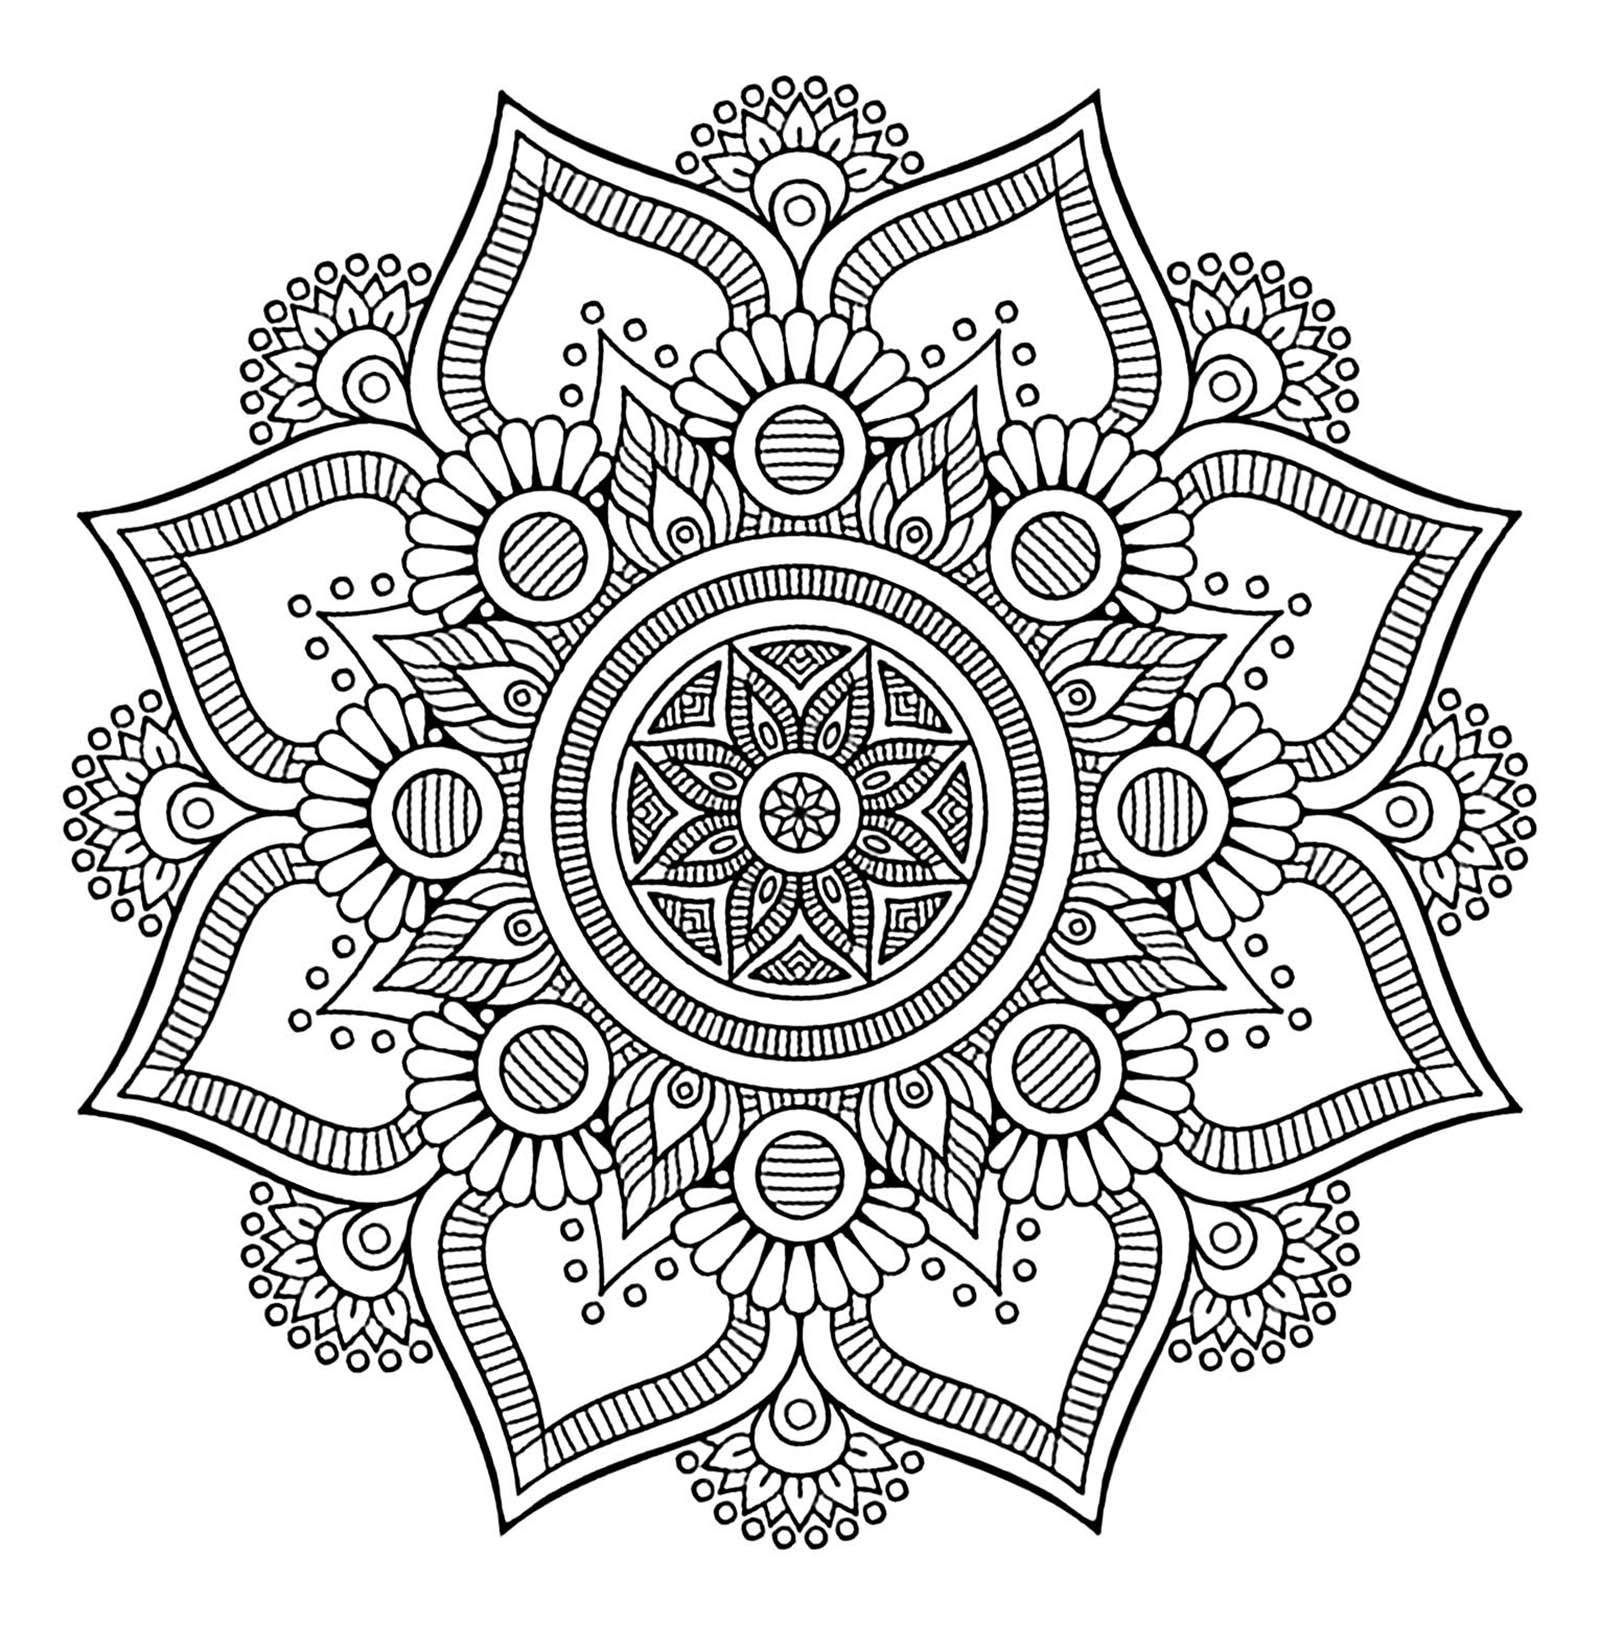 mandalas to color for adults mandala mpc design 9 malas adult coloring pages color to mandalas adults for